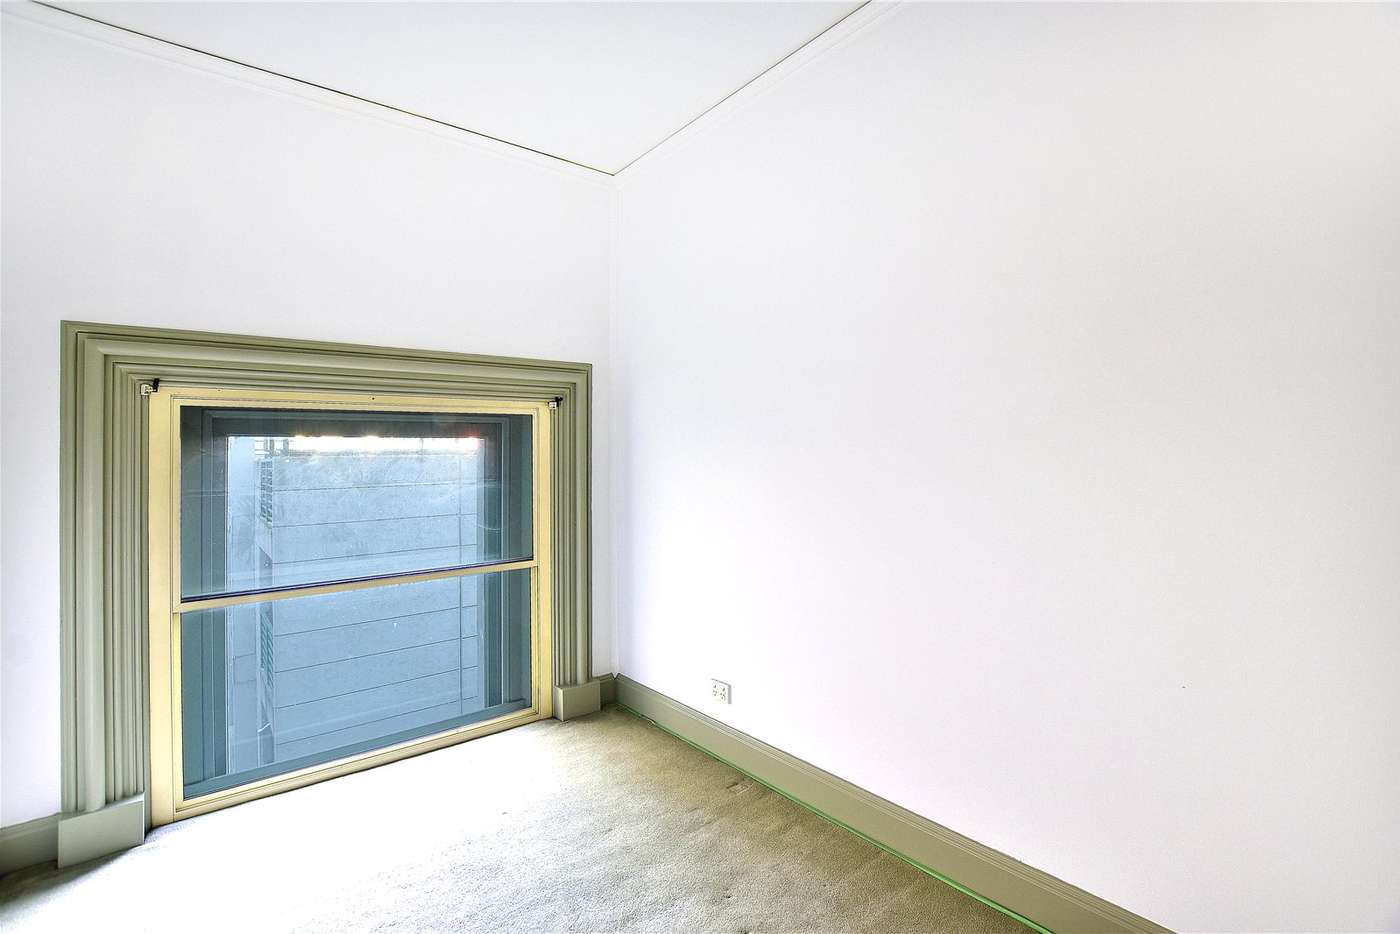 Sixth view of Homely apartment listing, 231/63 Spencer Street, Docklands VIC 3008